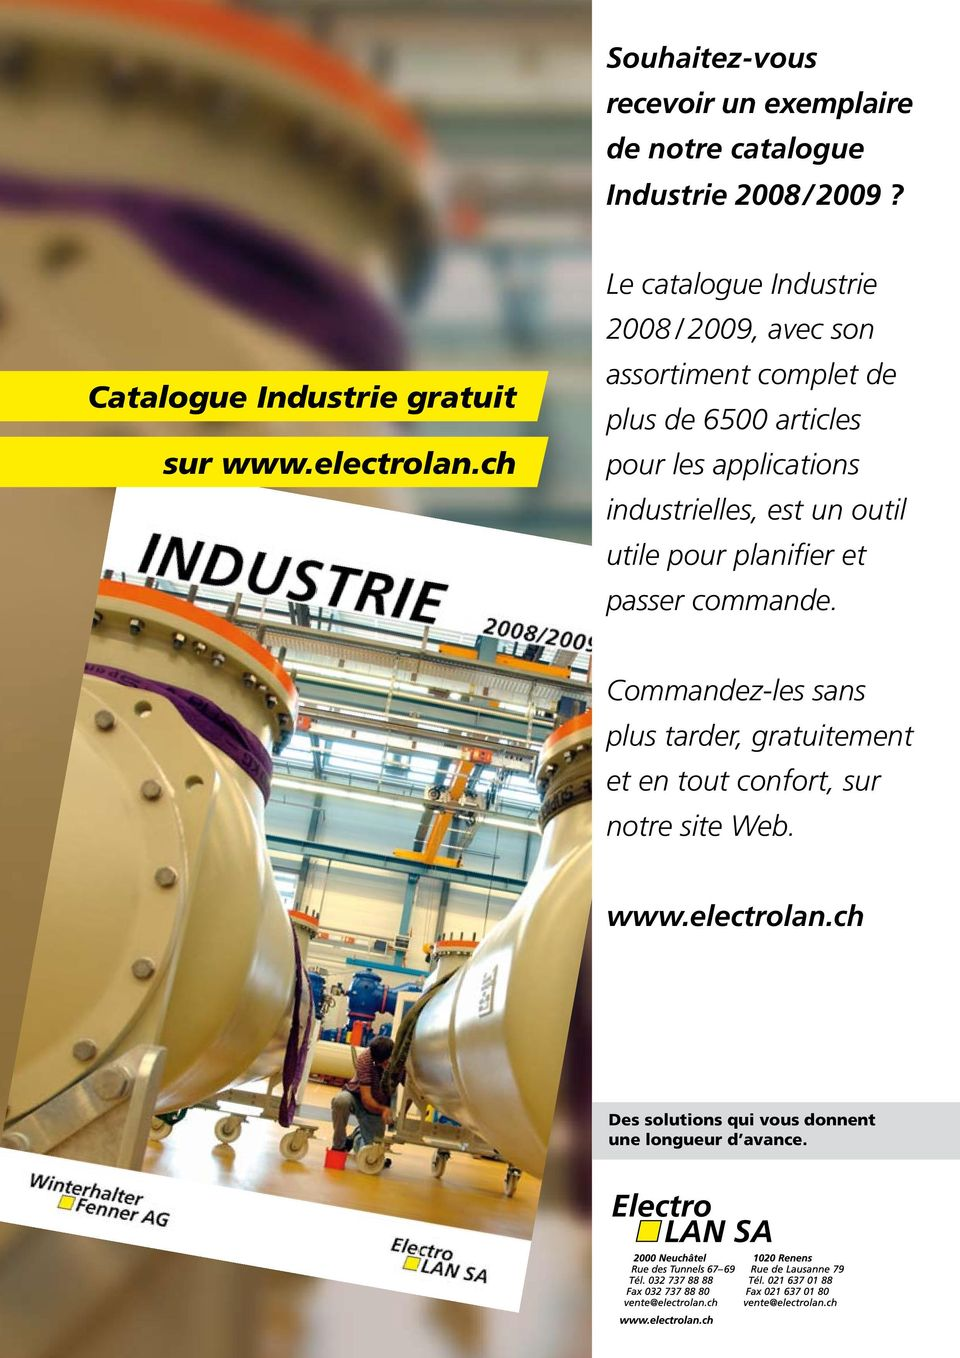 ch Le catalogue Industrie 2008 / 2009, avec son assortiment complet de plus de 6500 articles pour les applications